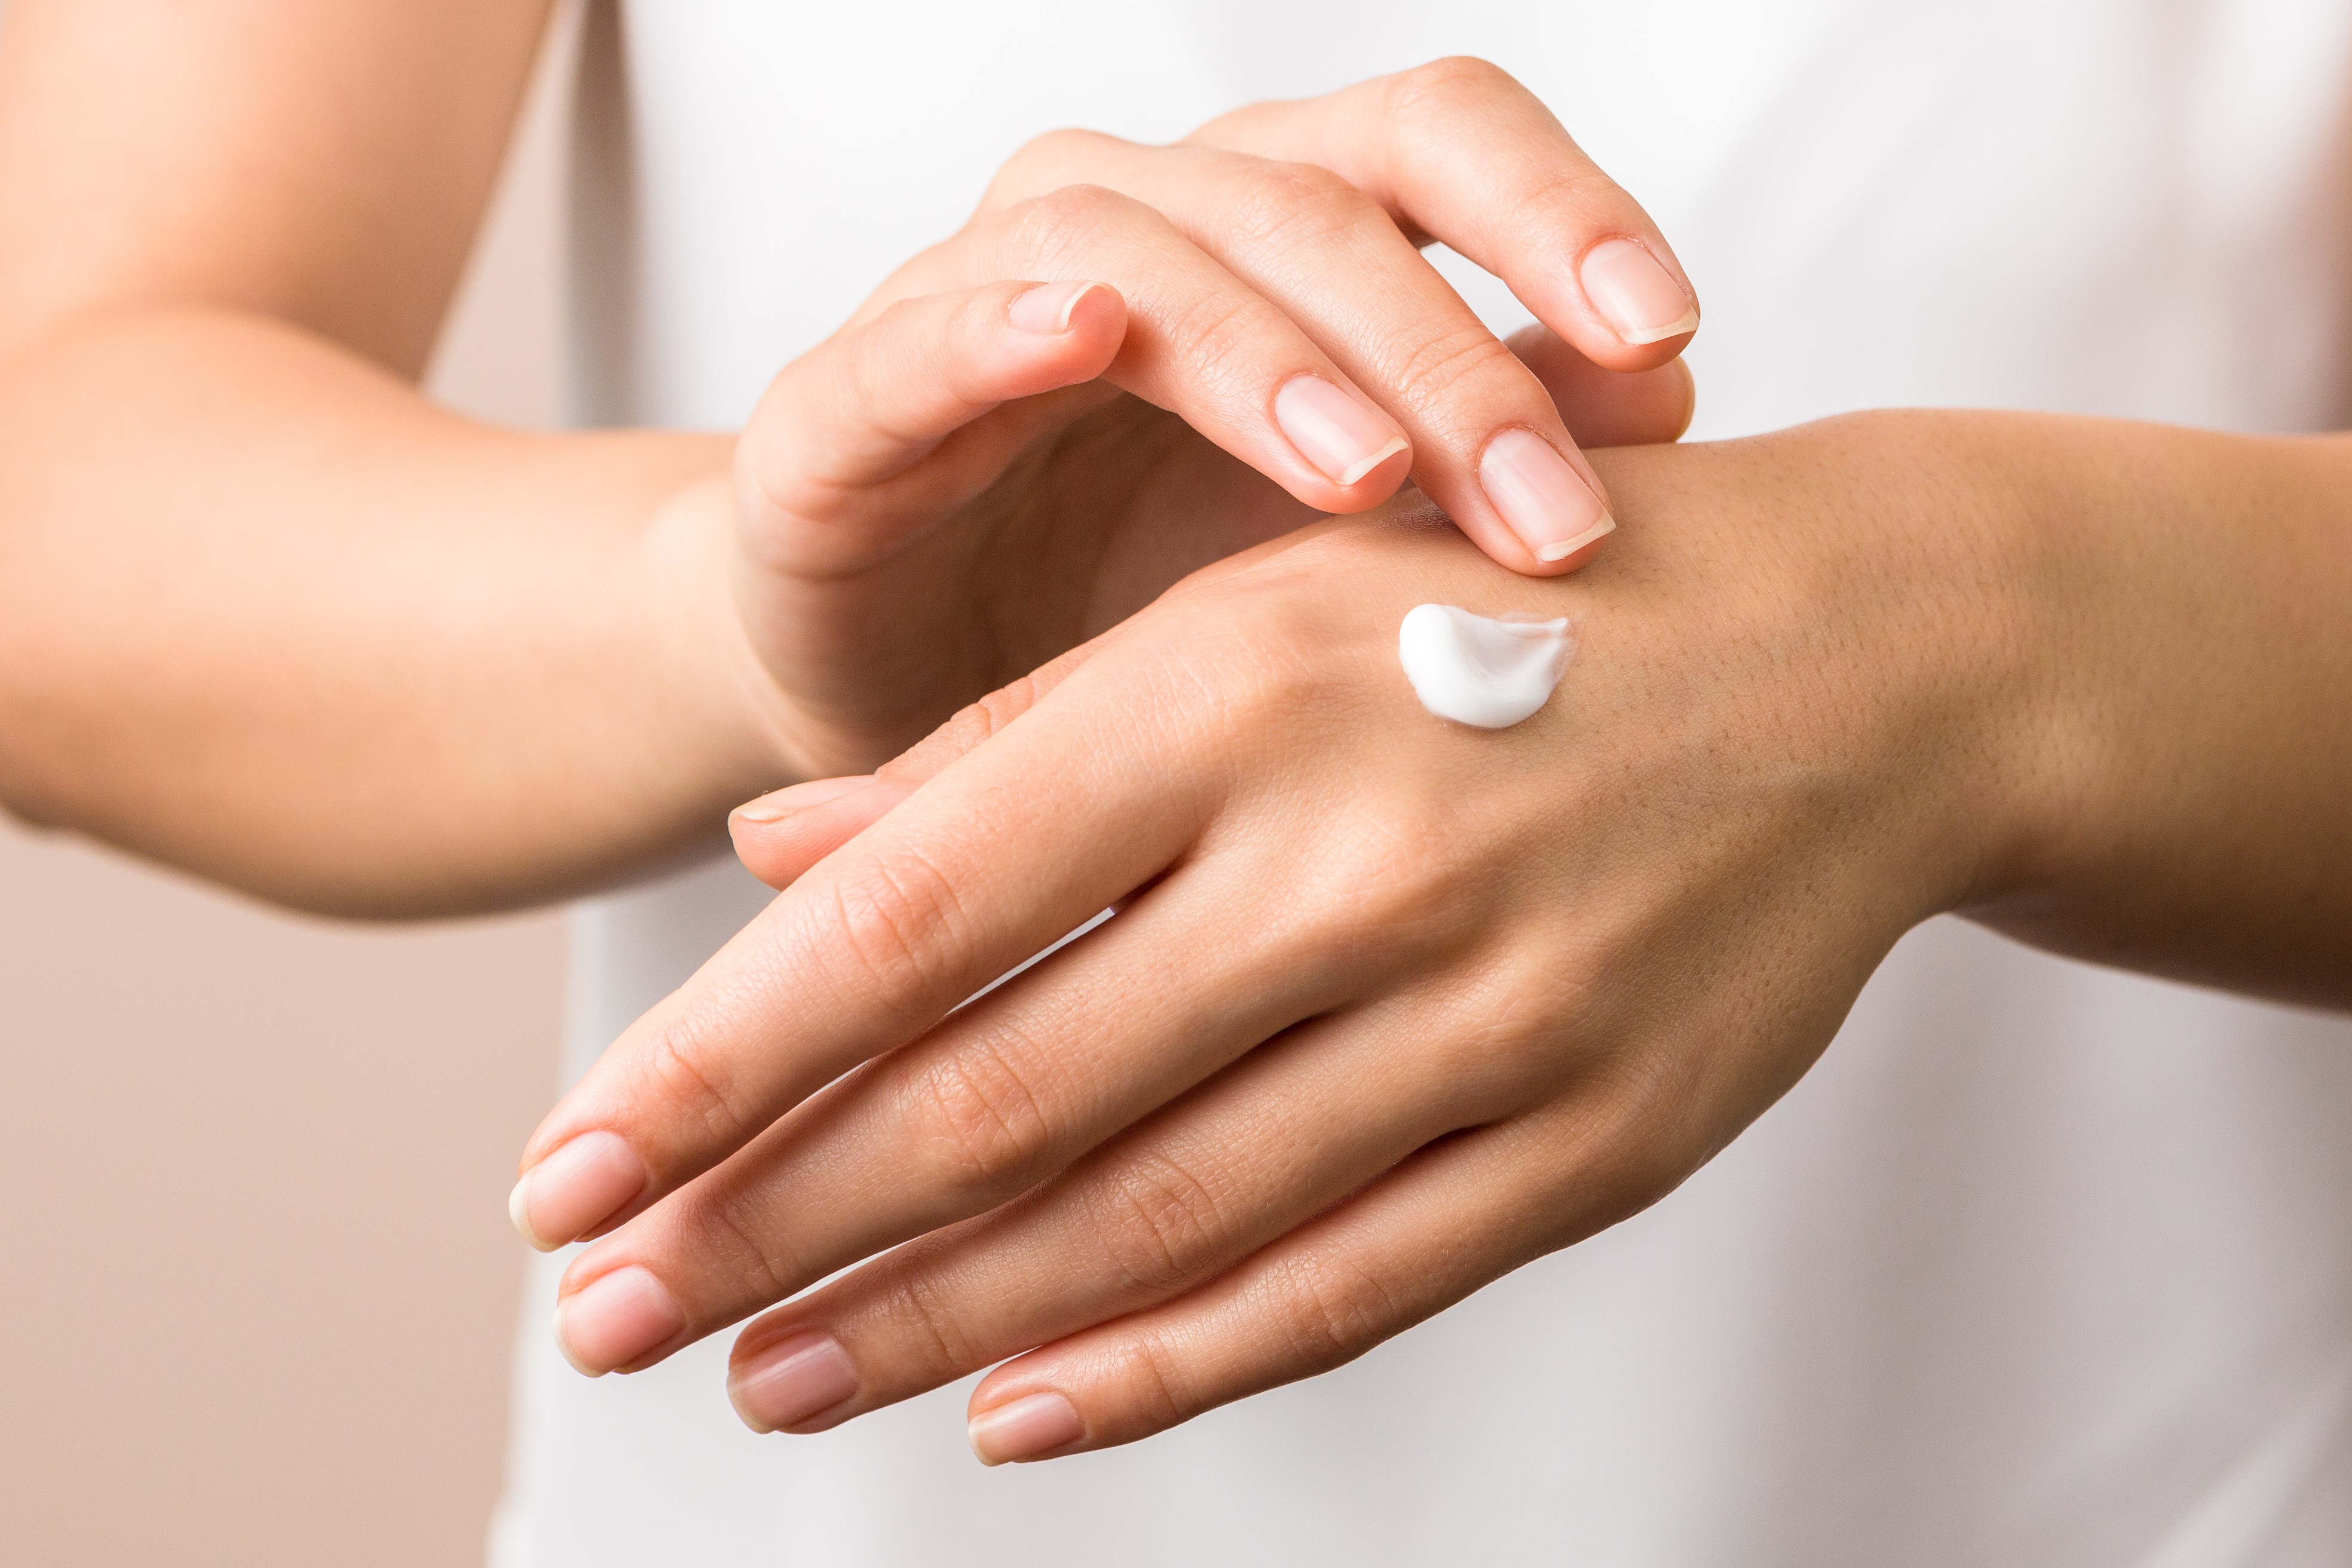 7 Ways to Care for Dry Hands